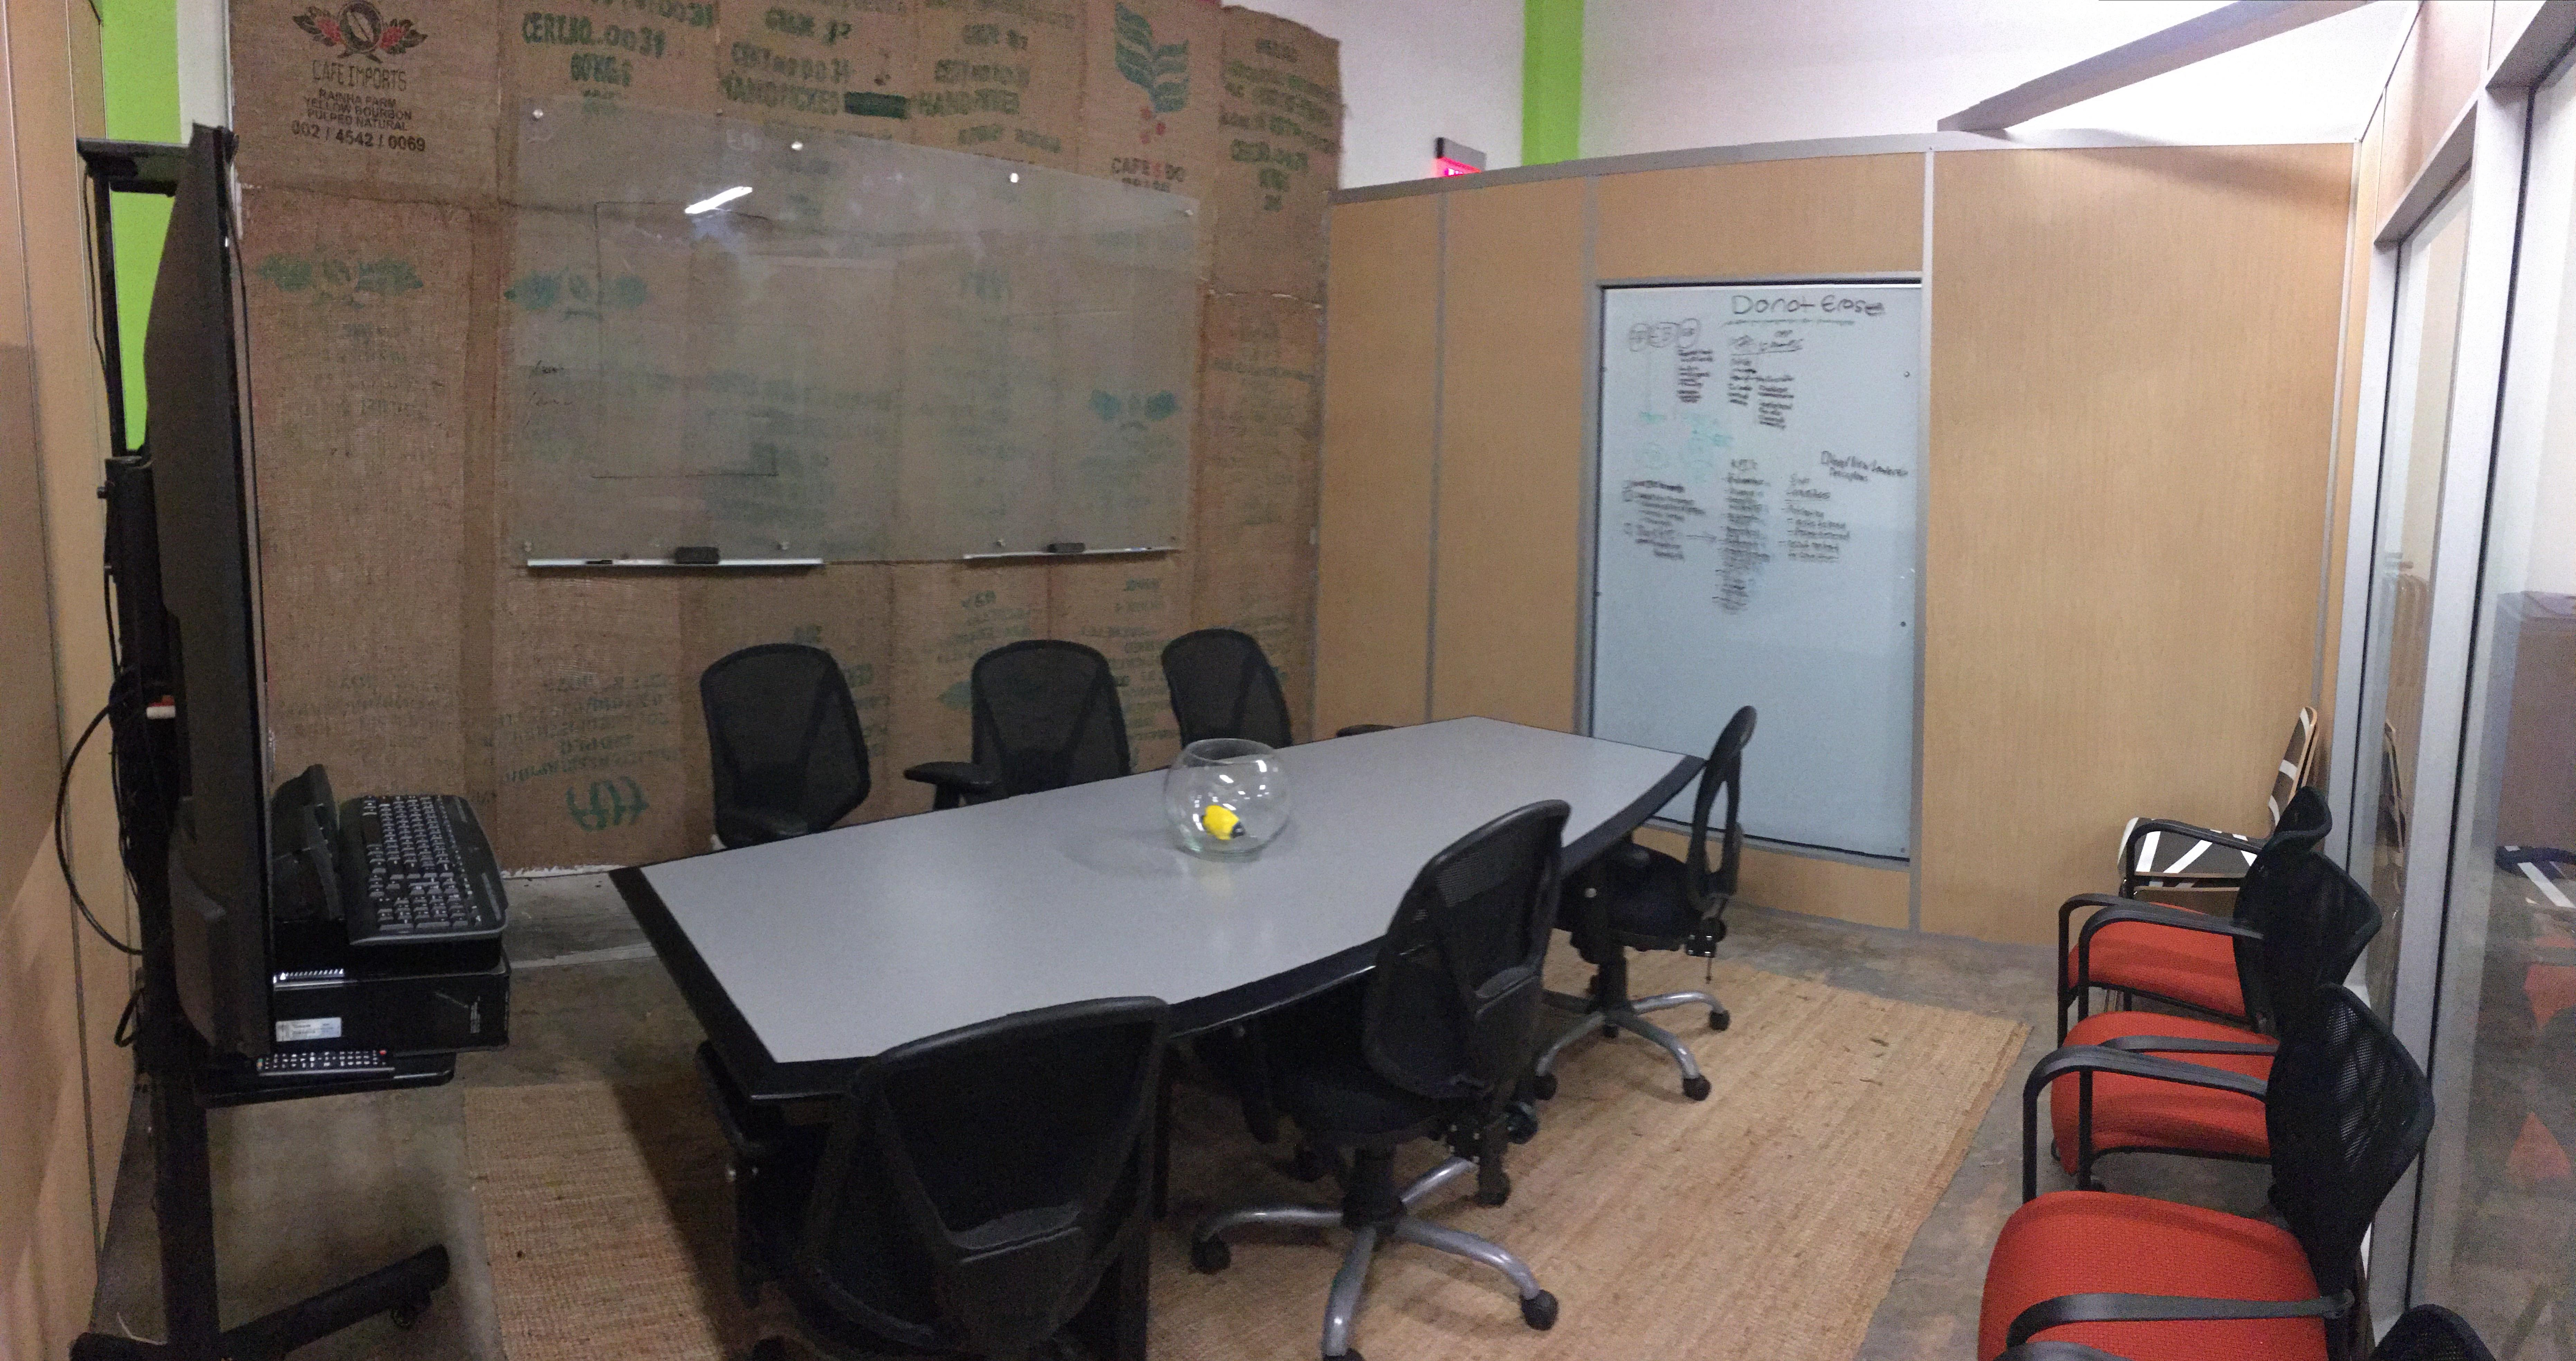 Palm Beach Tech Space - Fishbowl Conference Room